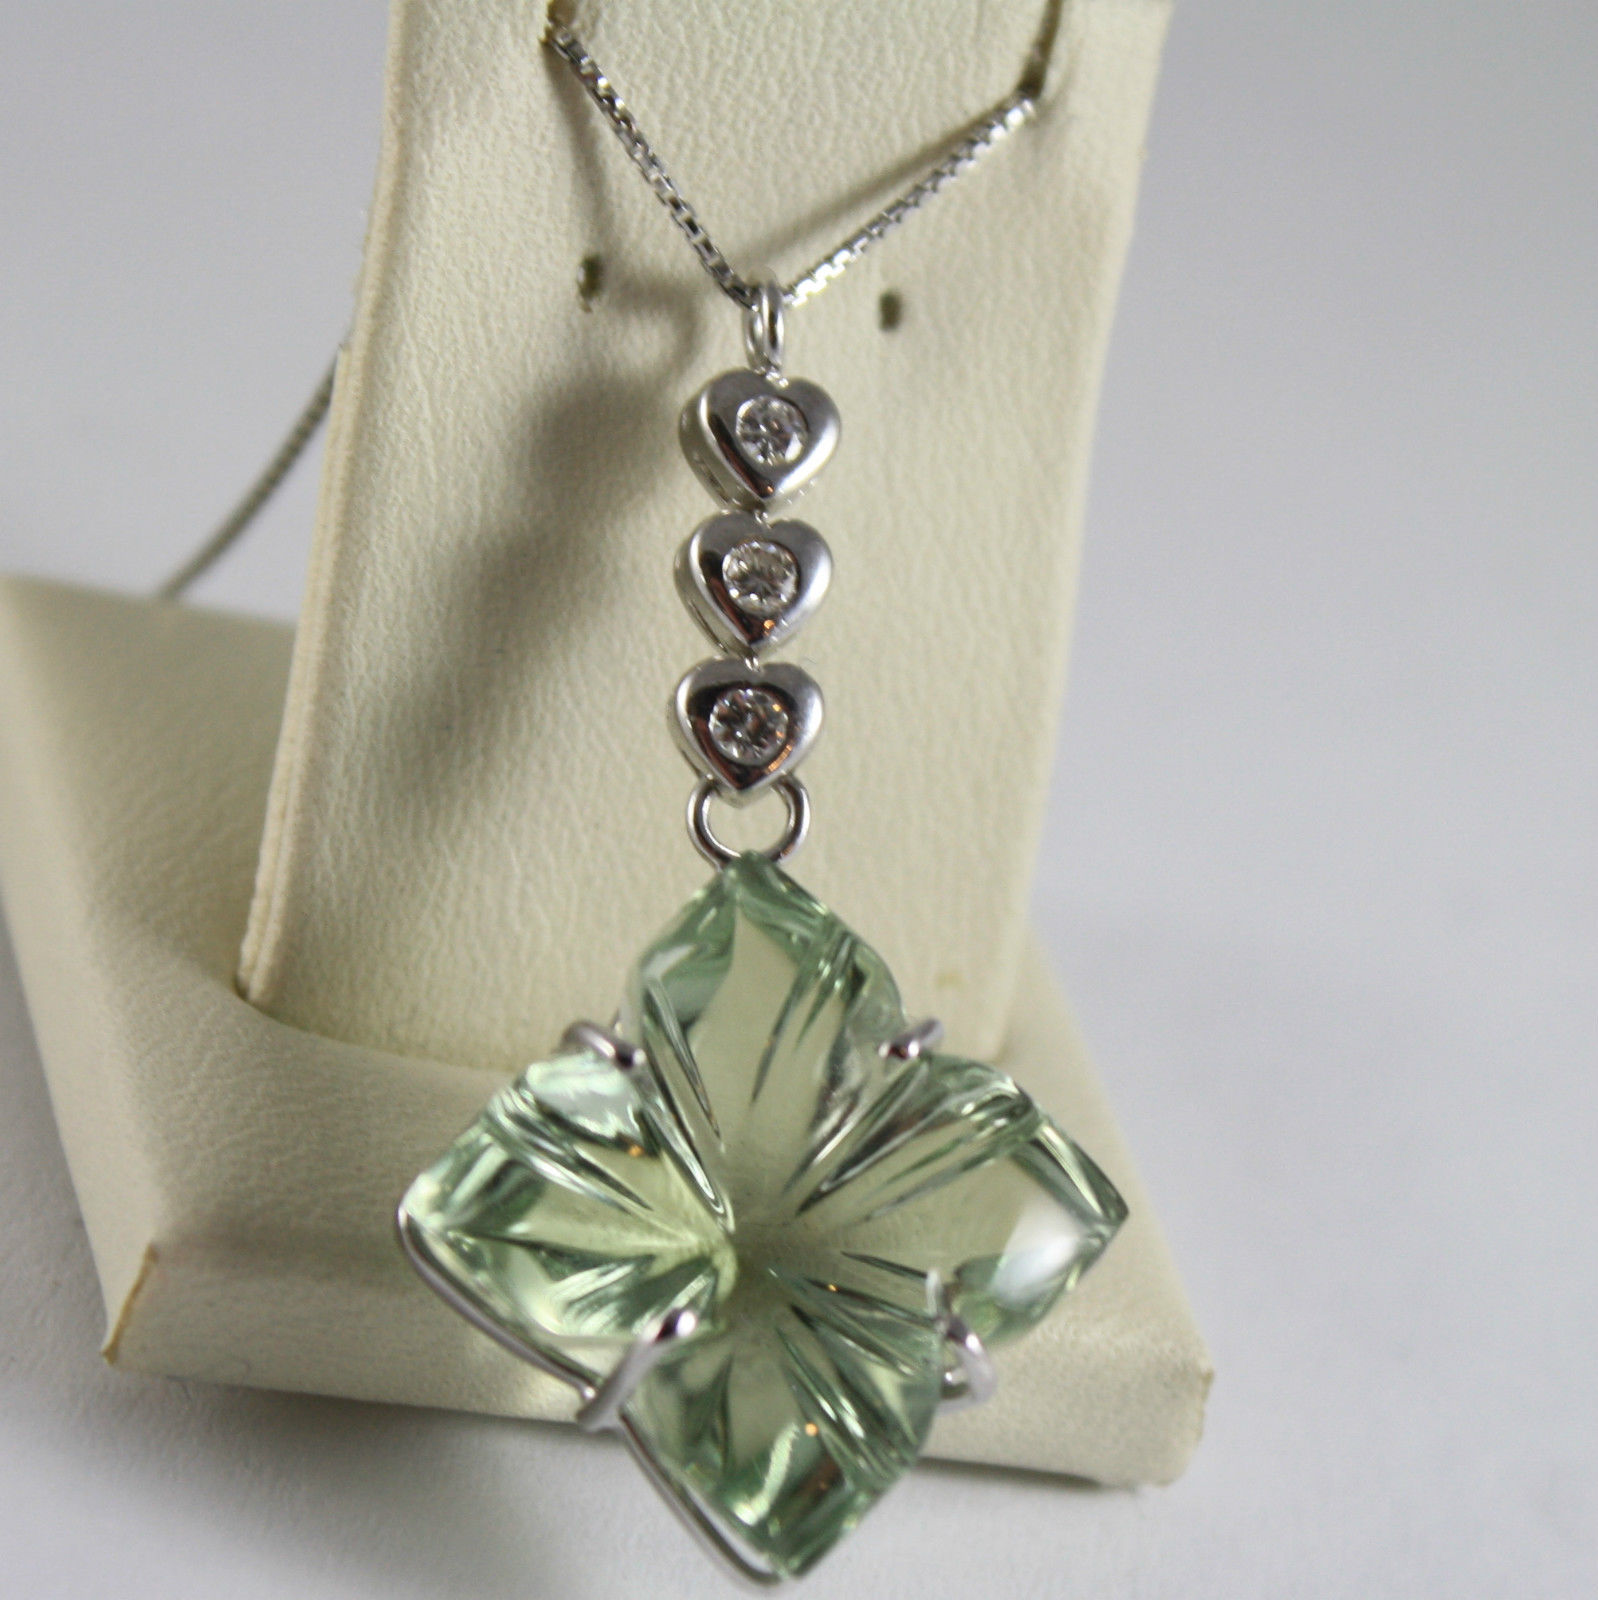 SOLID 18K WHITE GOLD NECKLACE HEART, DIAMOND PRASIOLITE FLOWER CUT MADE IN ITALY